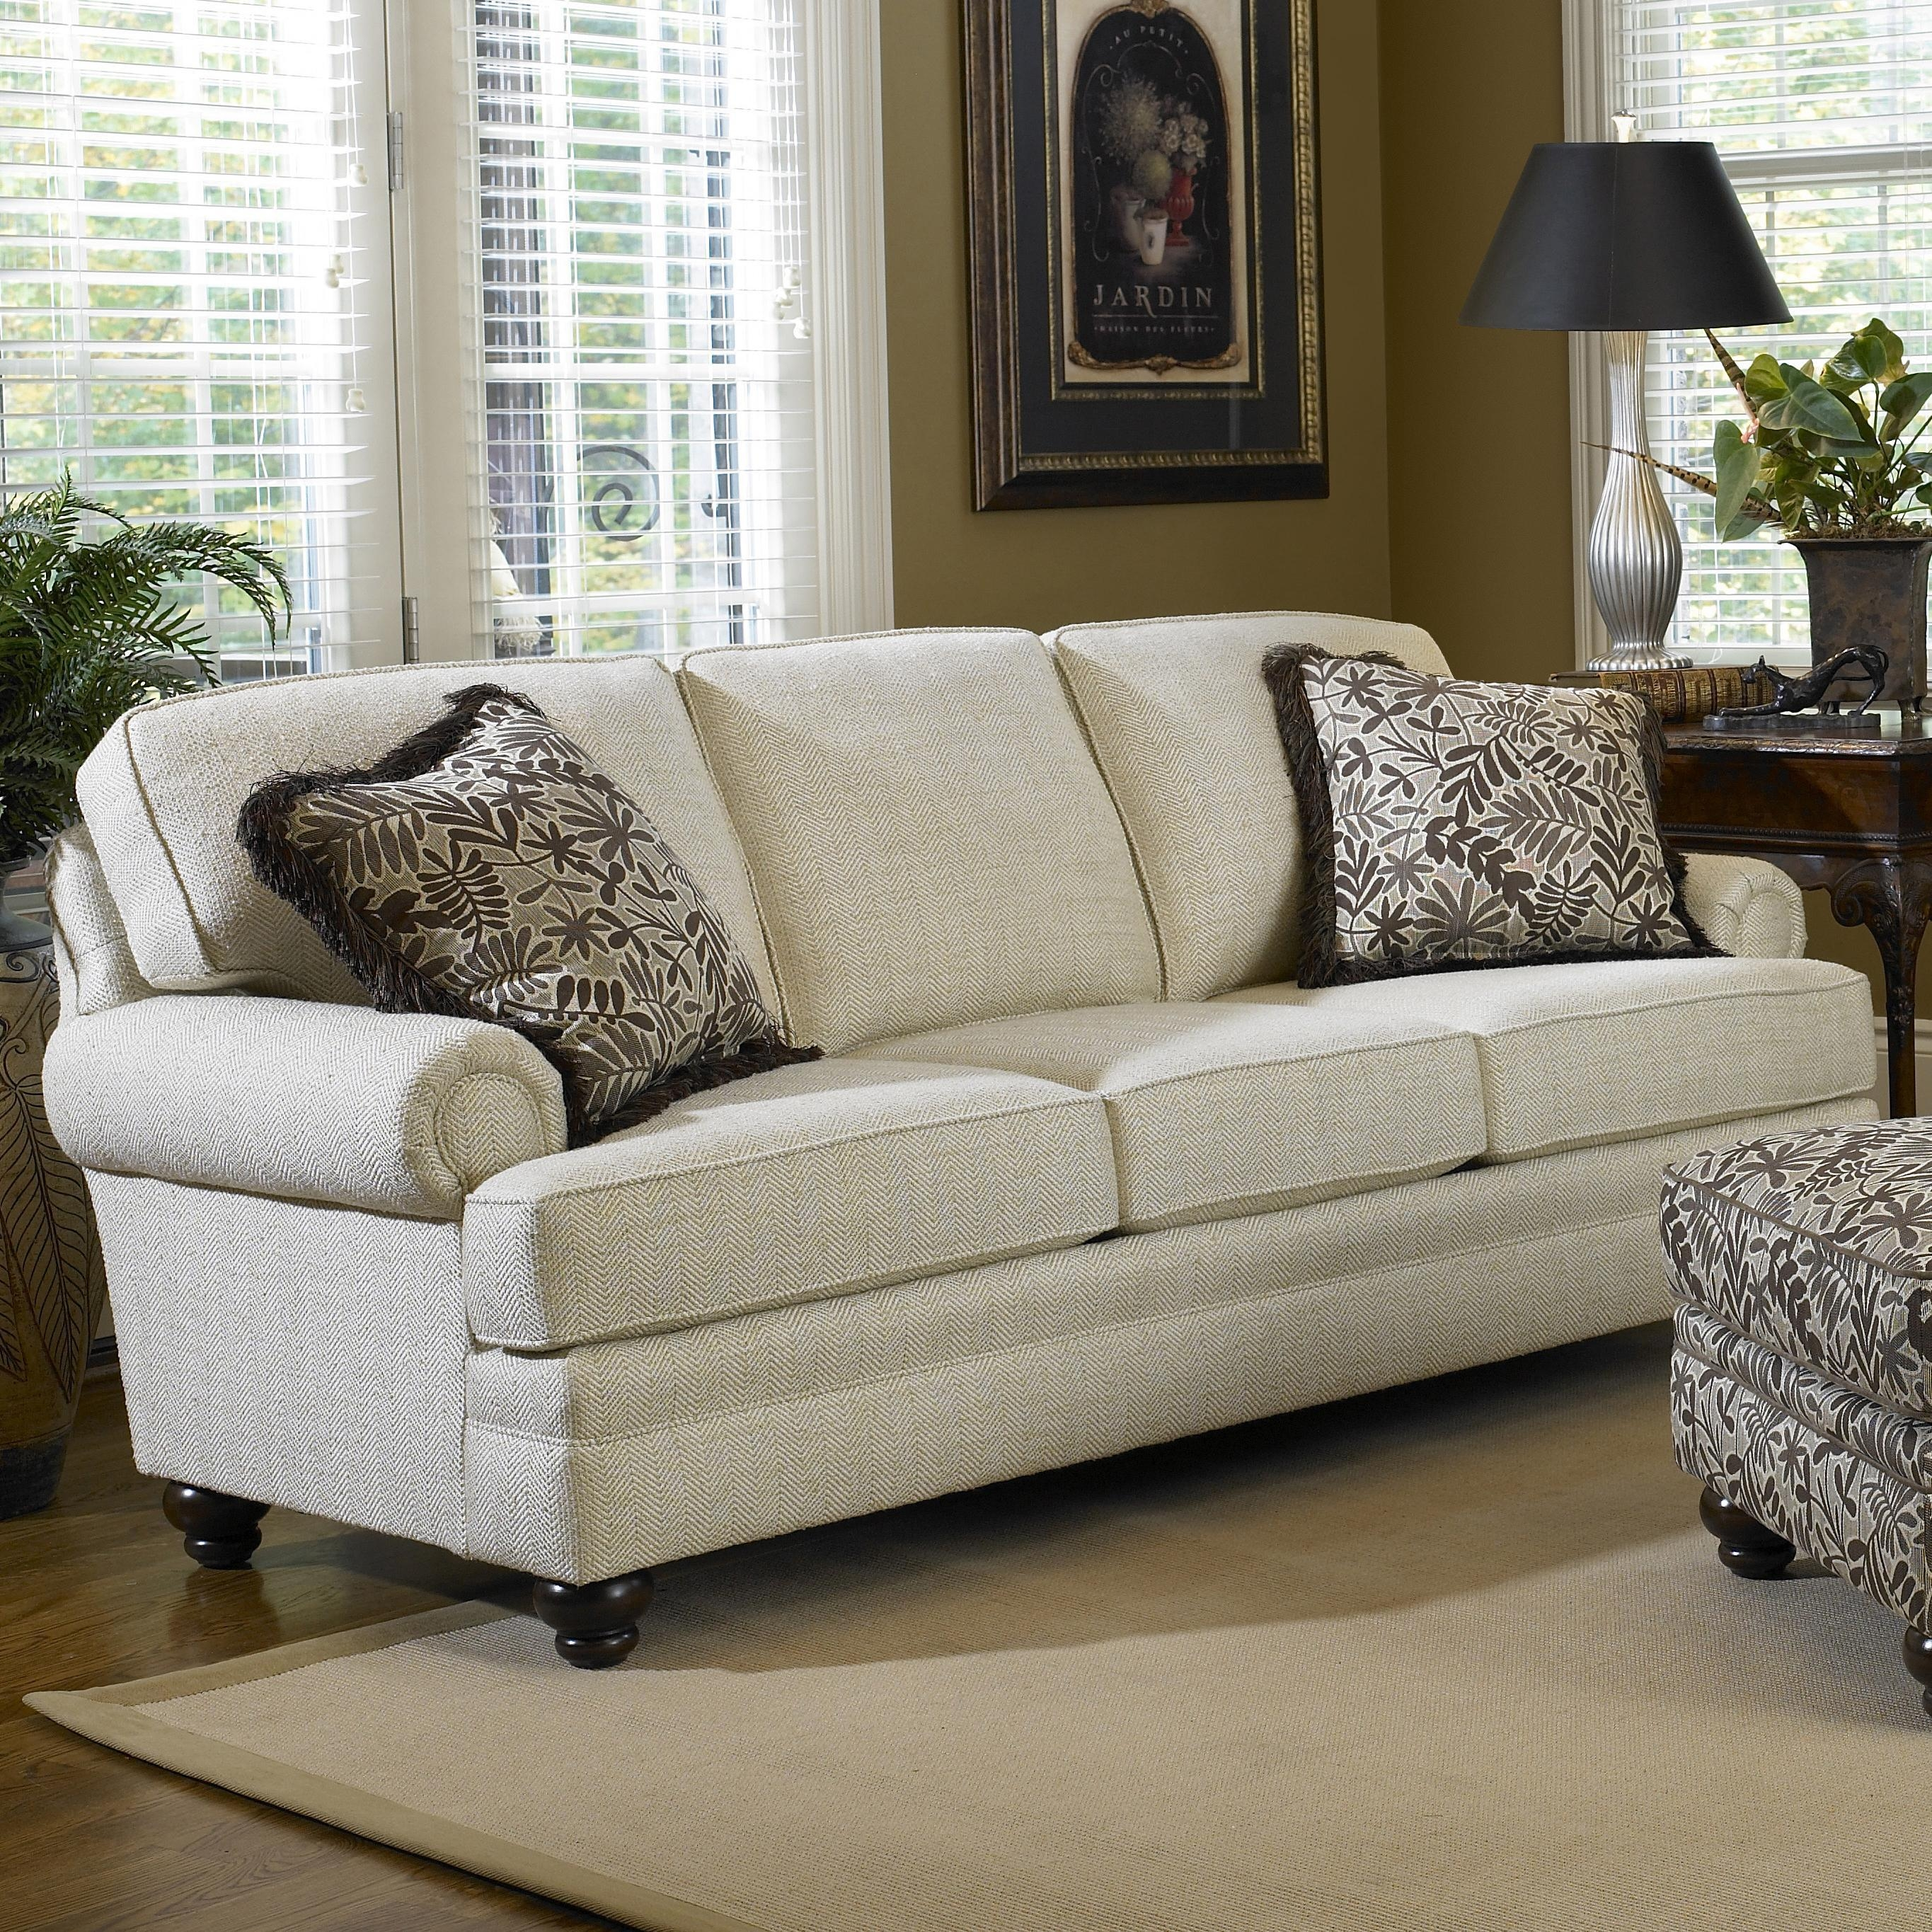 20 photos smith brothers sofas sofa ideas for Sectional sofas gardiners